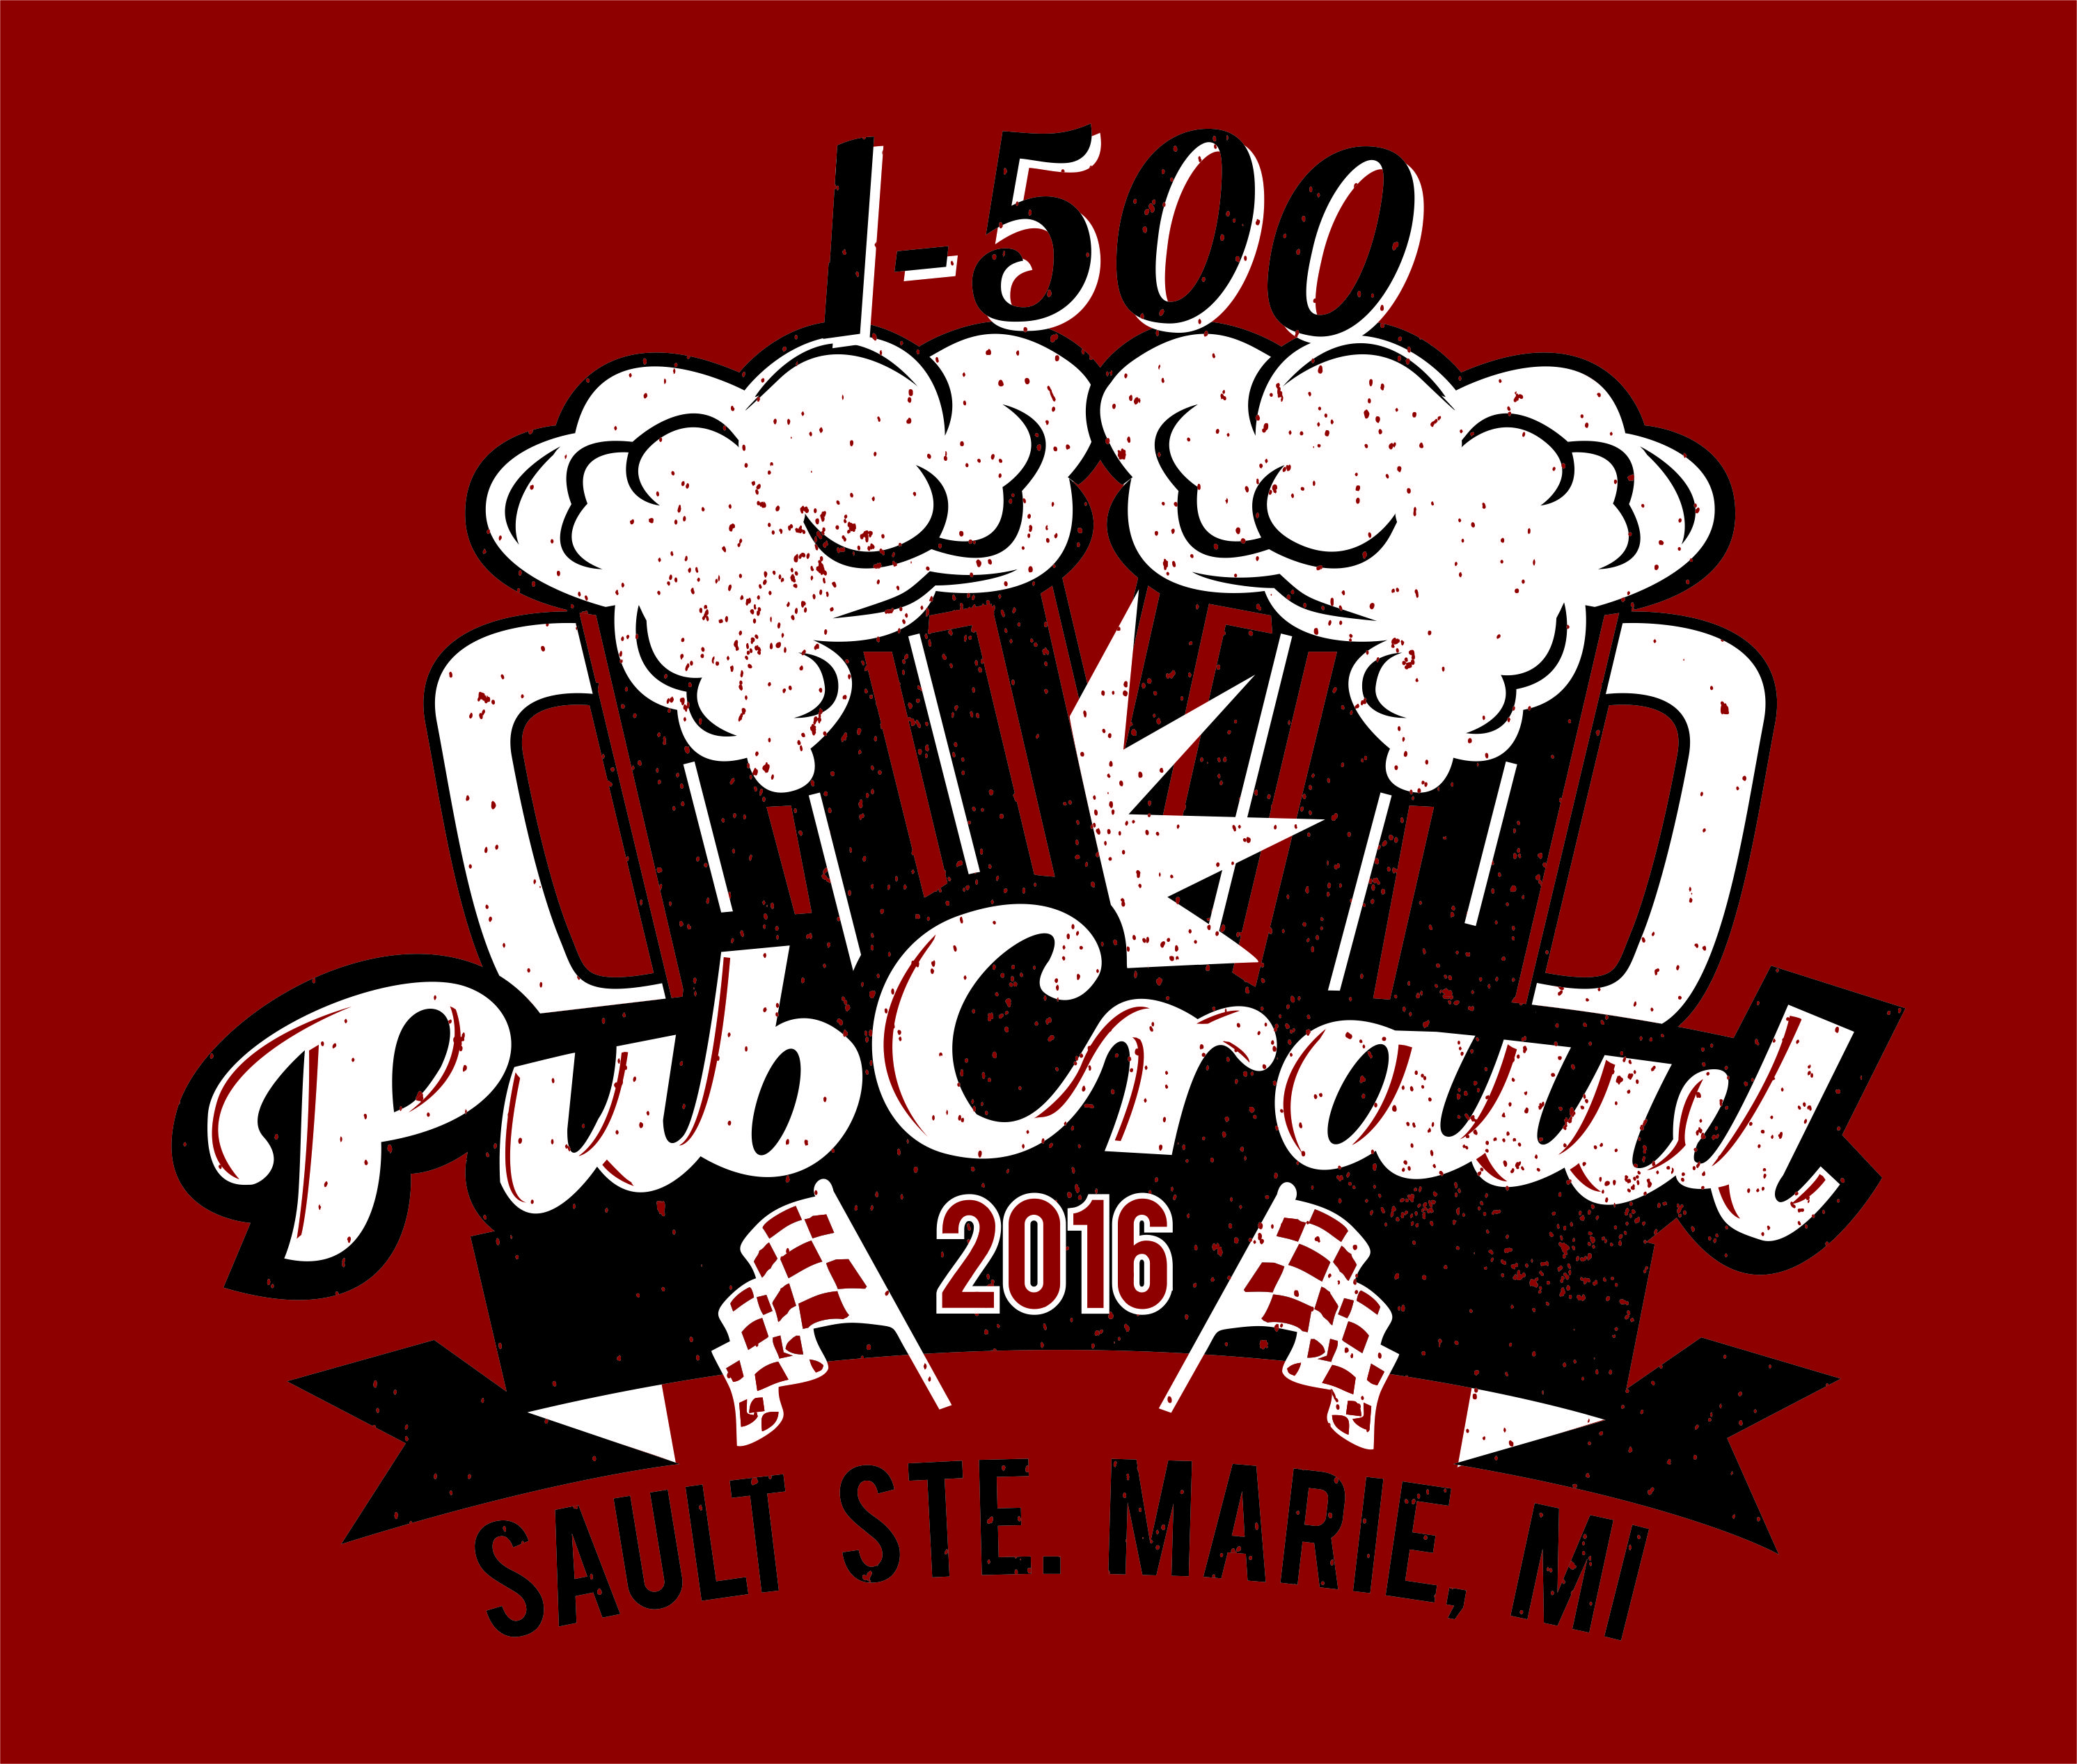 Annual I-500 Pub Crawl